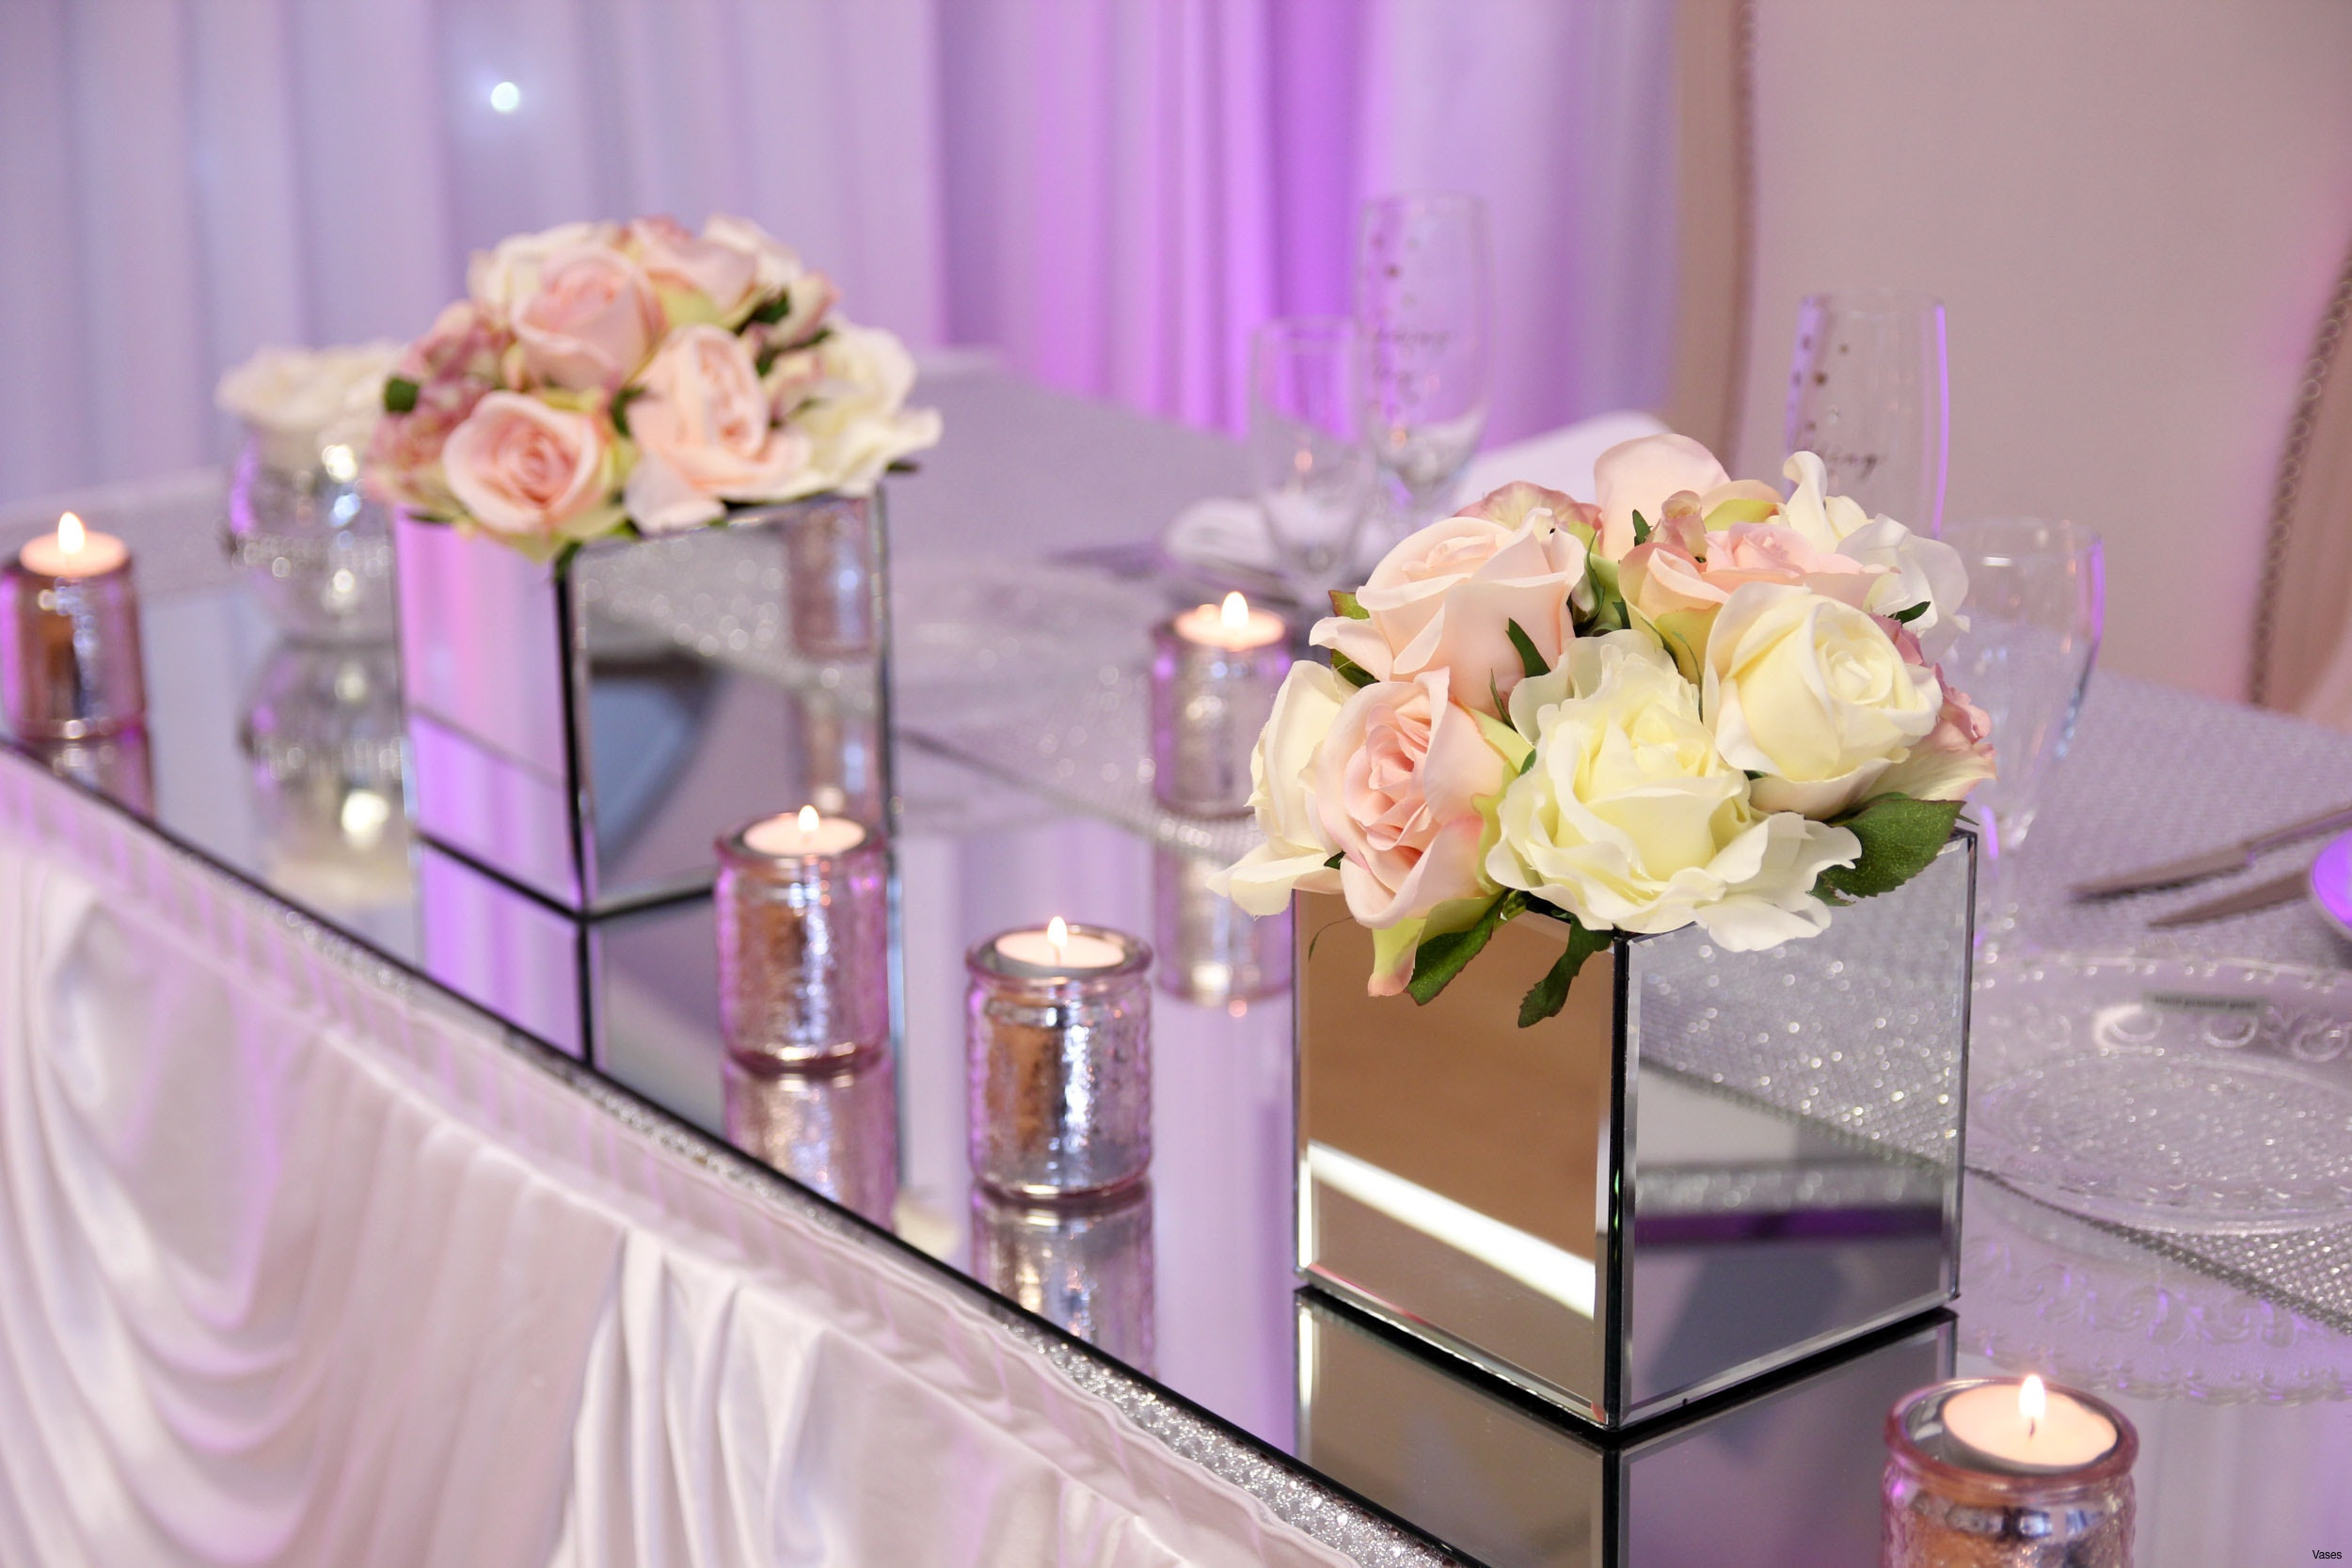 tall vases for sale cheap of wedding party favors awesome mirrored square vase 3h vases mirror in wedding party favors awesome mirrored square vase 3h vases mirror table decorationi 0d weddings photos